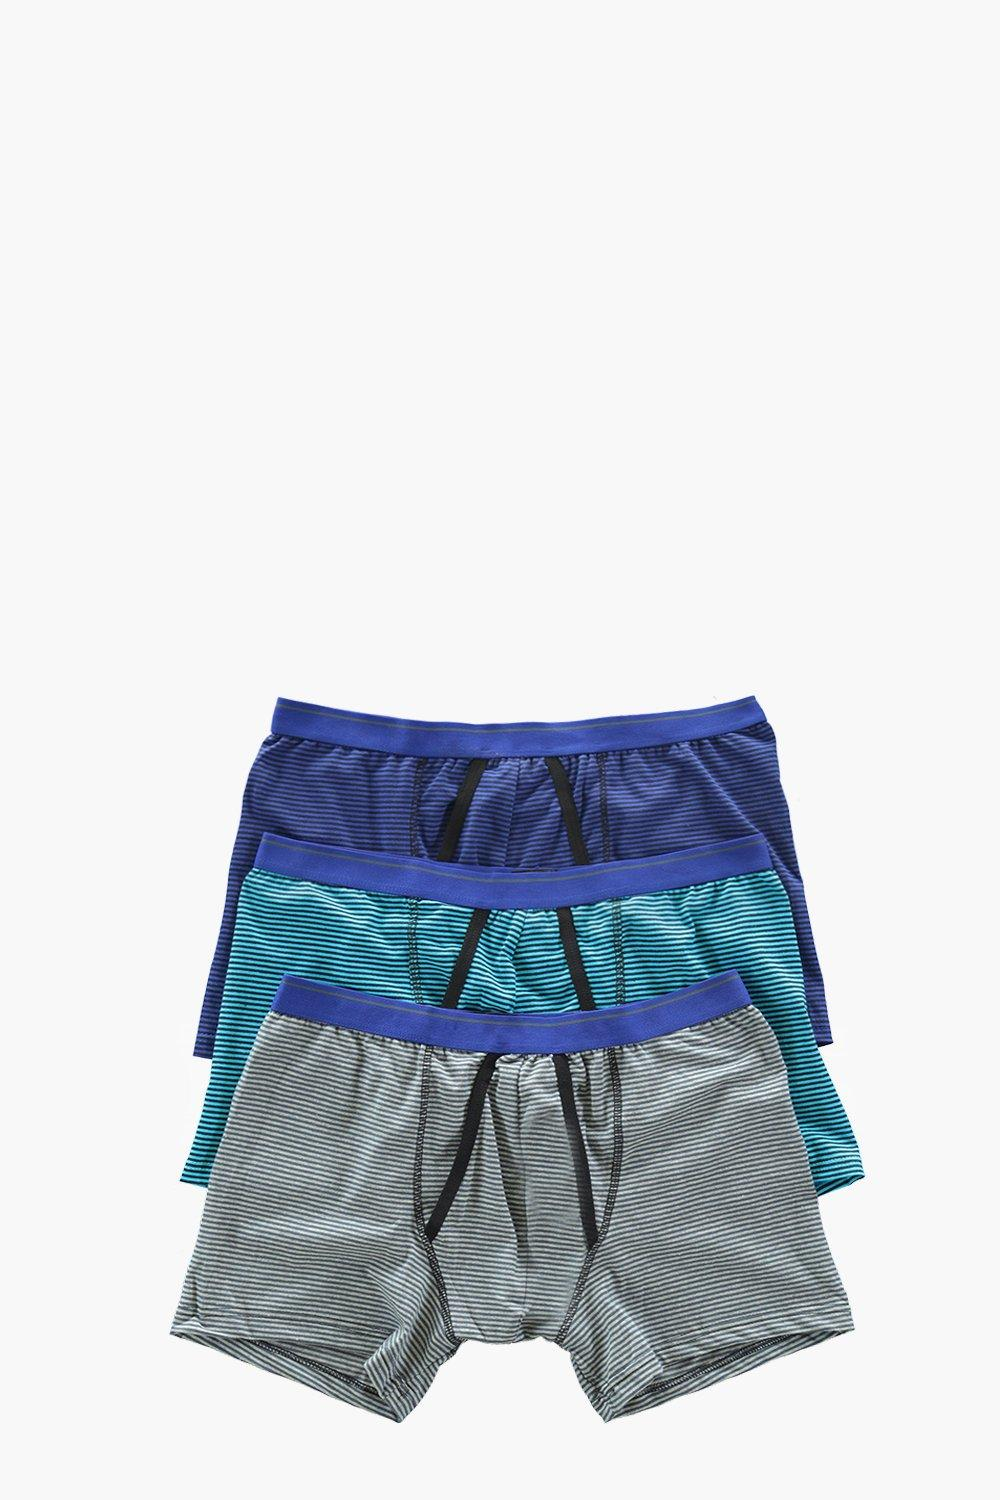 3 Pack Yarn Dye Striped Boxers